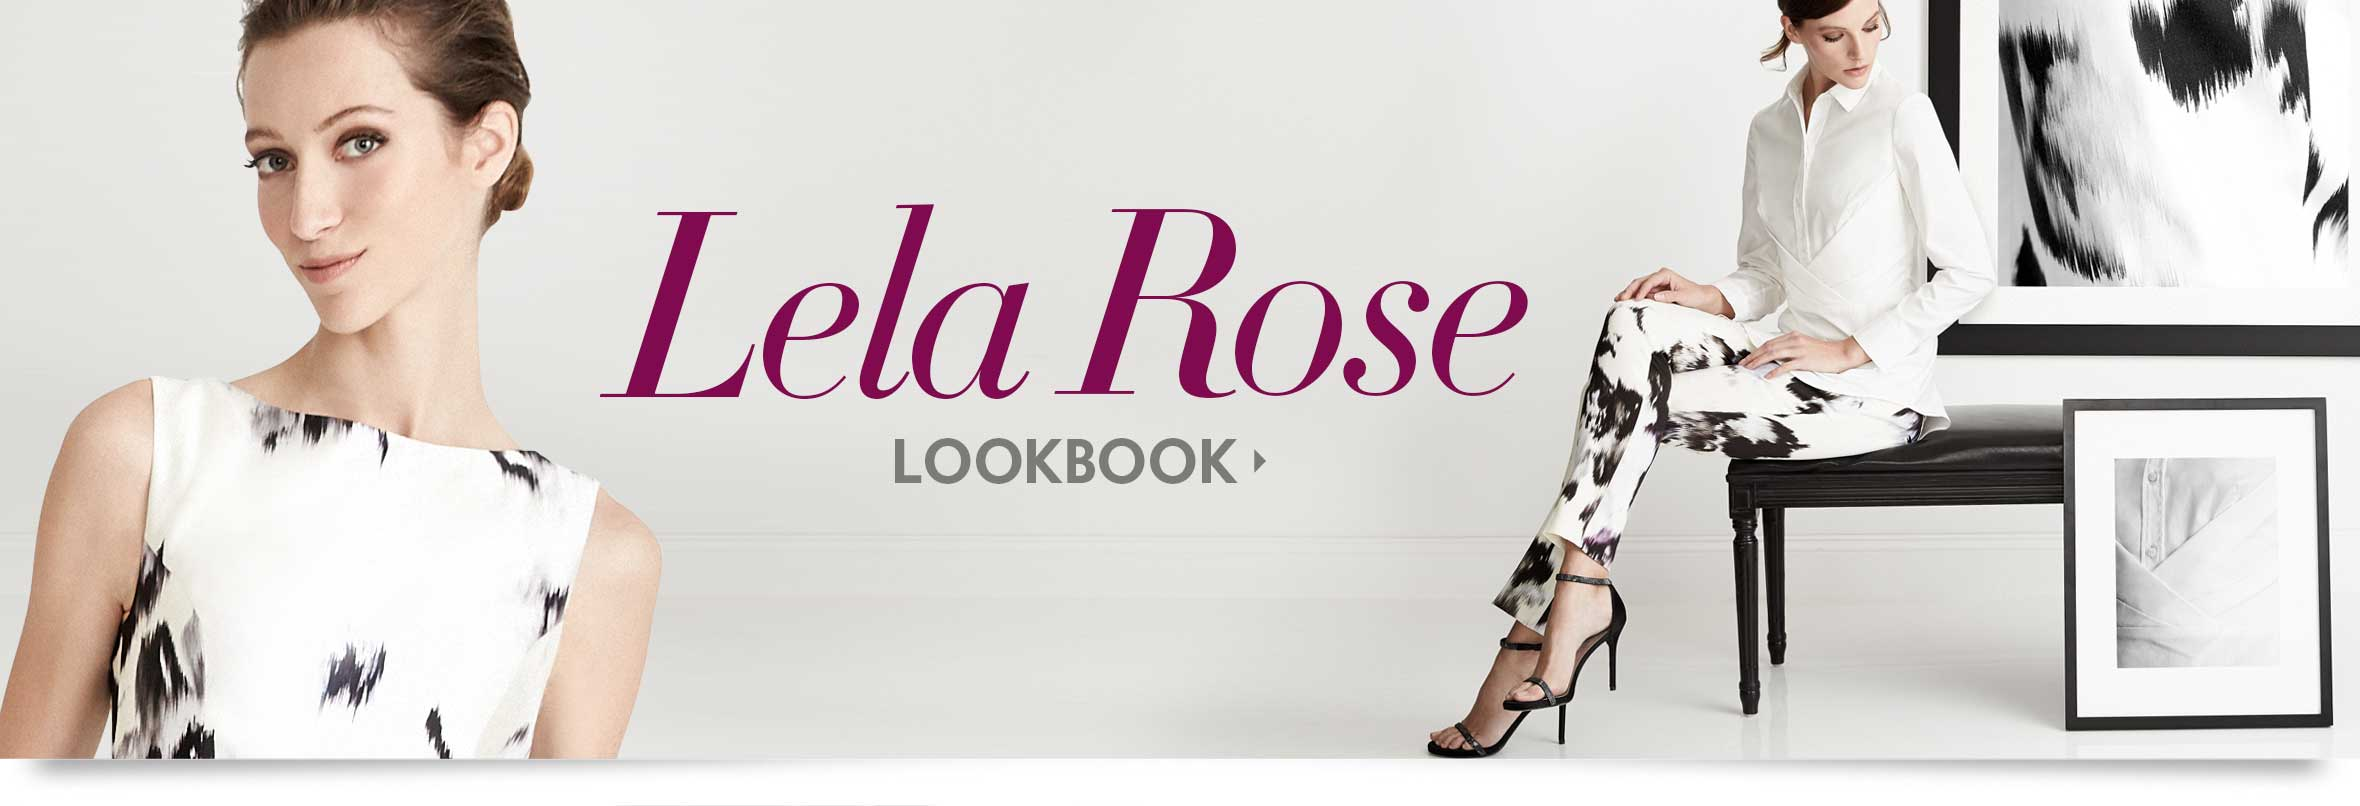 LELA ROSE: Shop the Lookbook